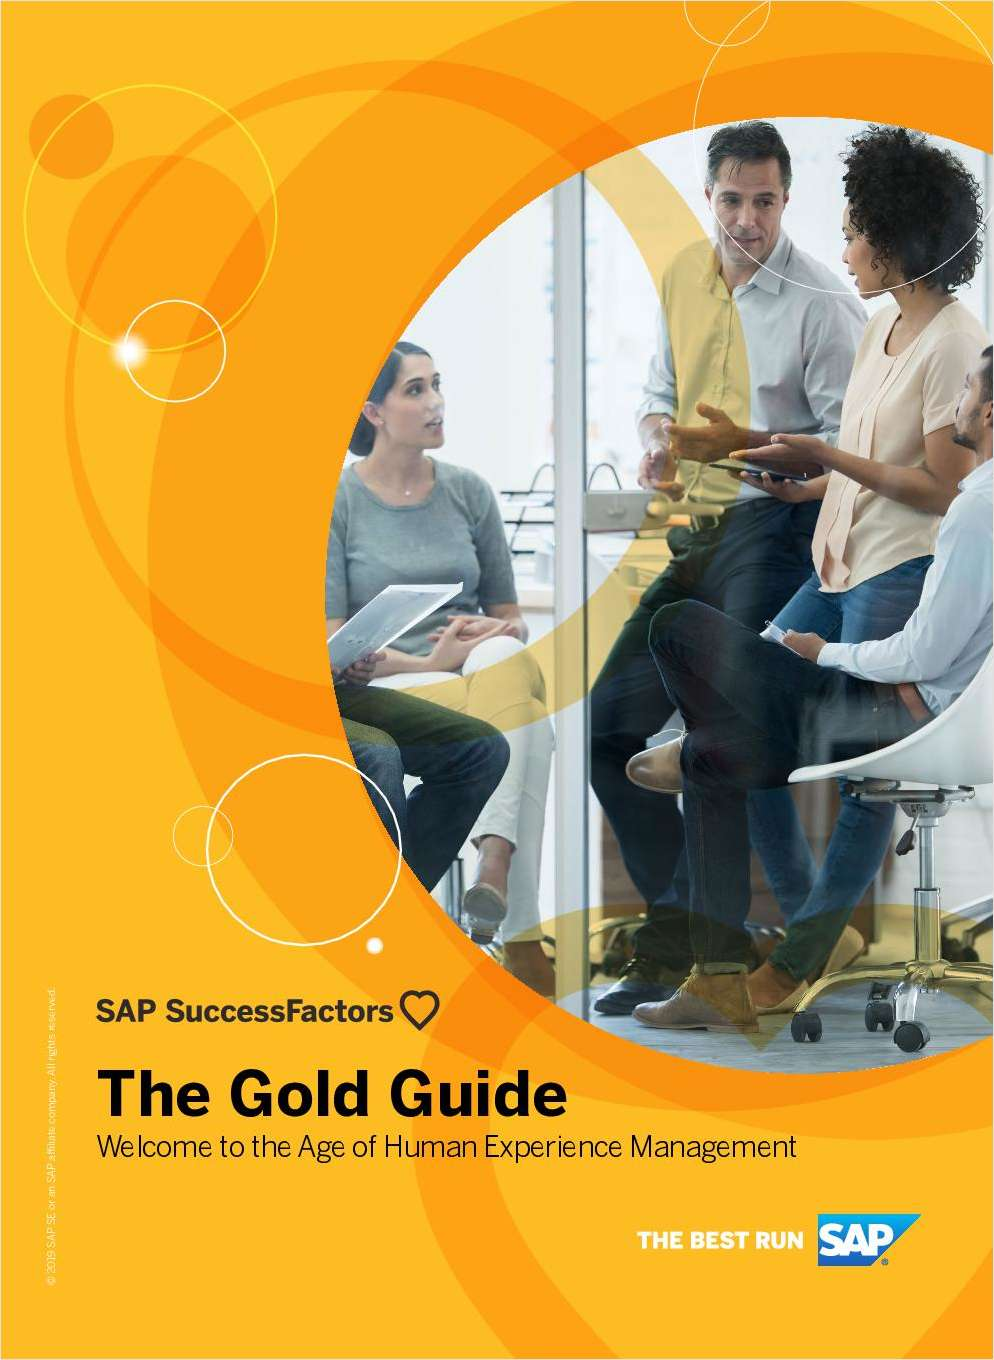 The Gold Guide: Welcome to the Age of Human Experience Management